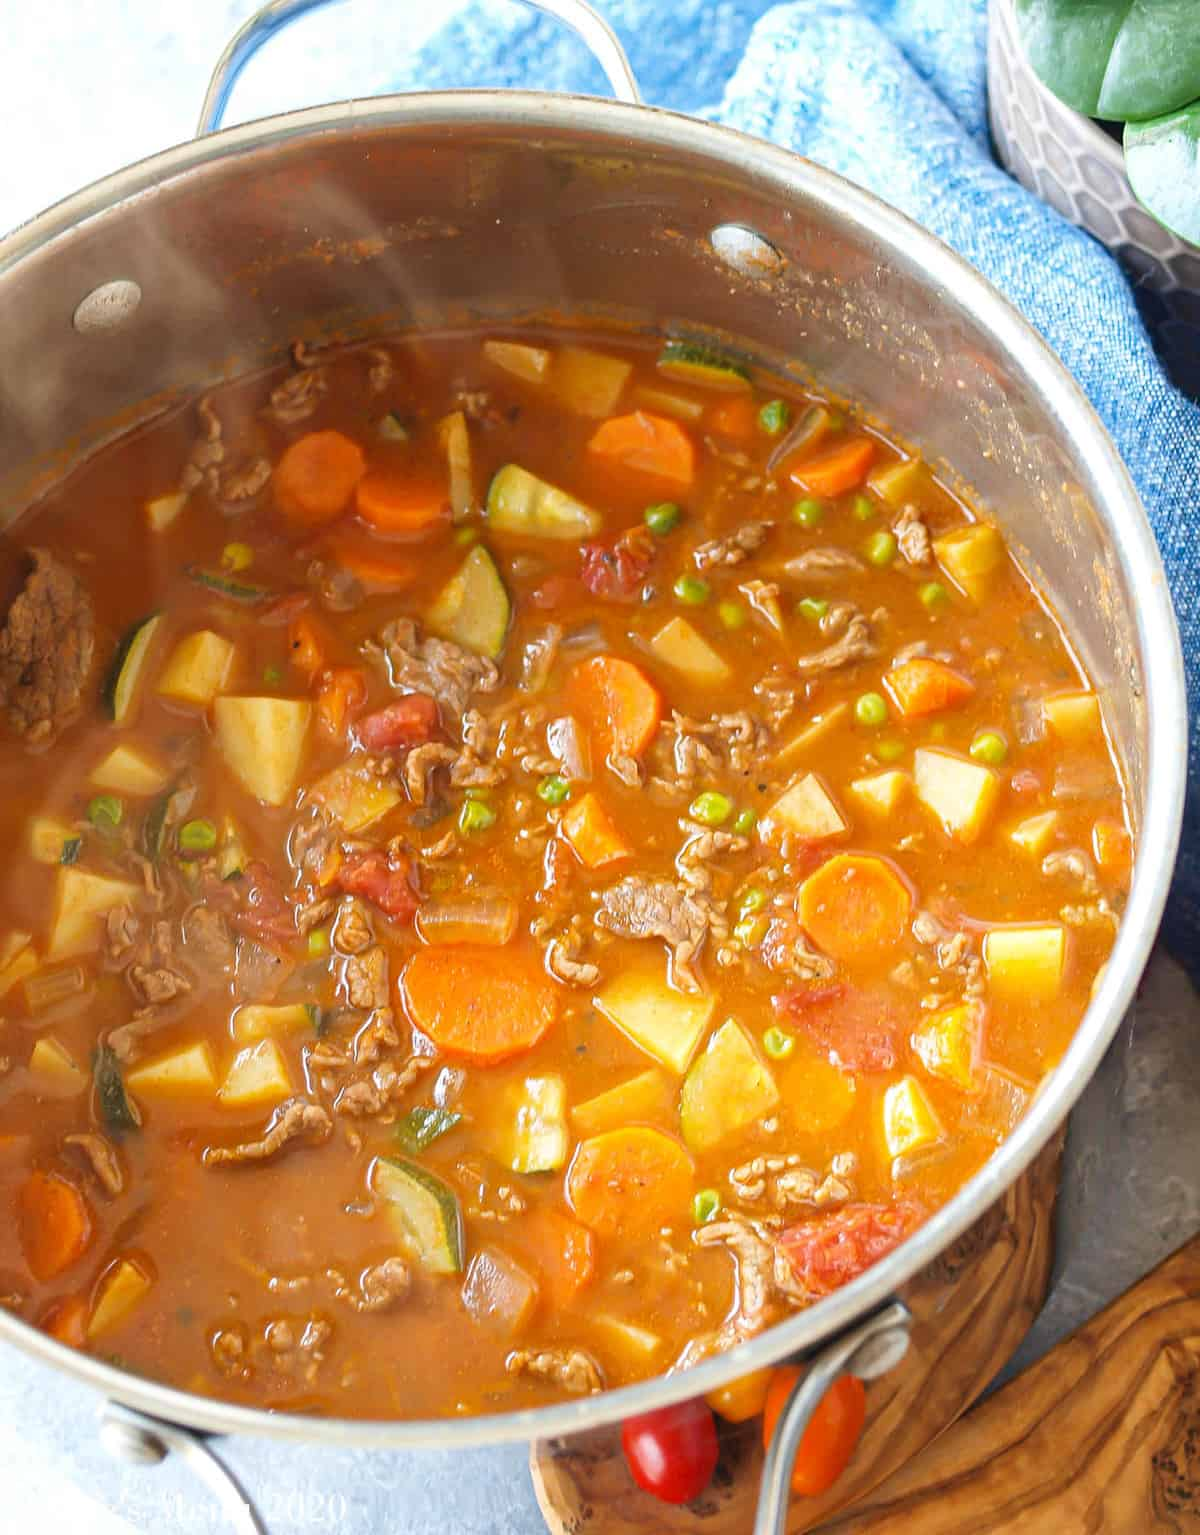 Freshly cooked steak soup in a large pot